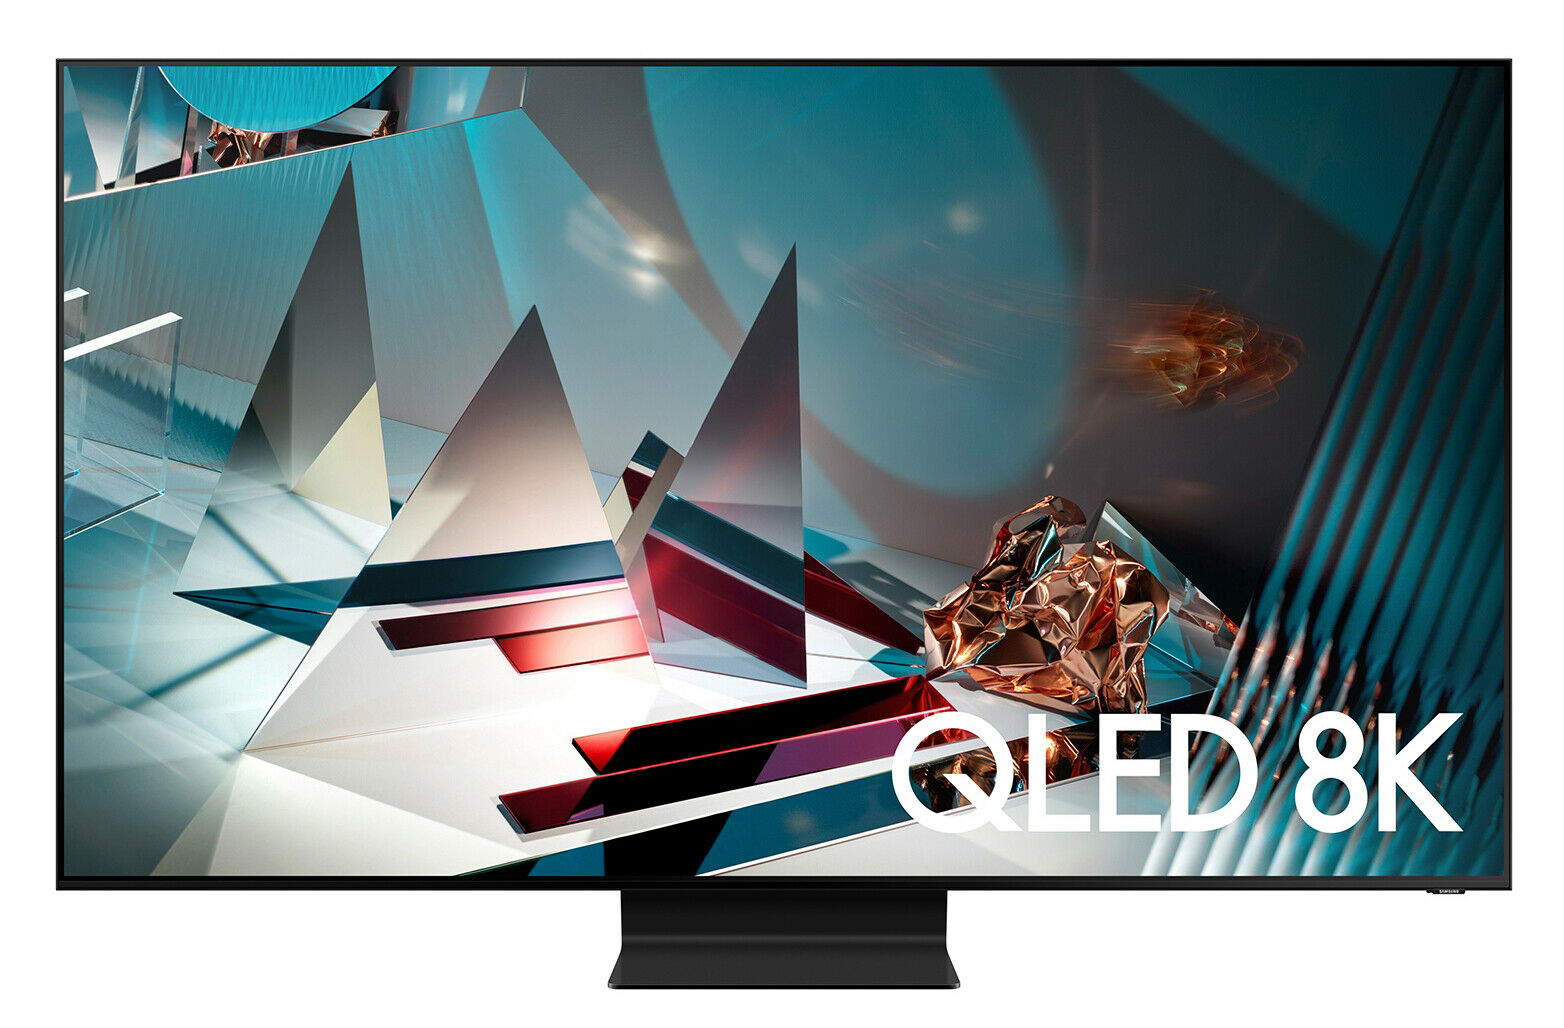 Samsung Q800T QN65Q800TAFXZA 65 QLED 8K Smart TV - PLEASE READ FULL INFORMATION. Available Now for 1499.00